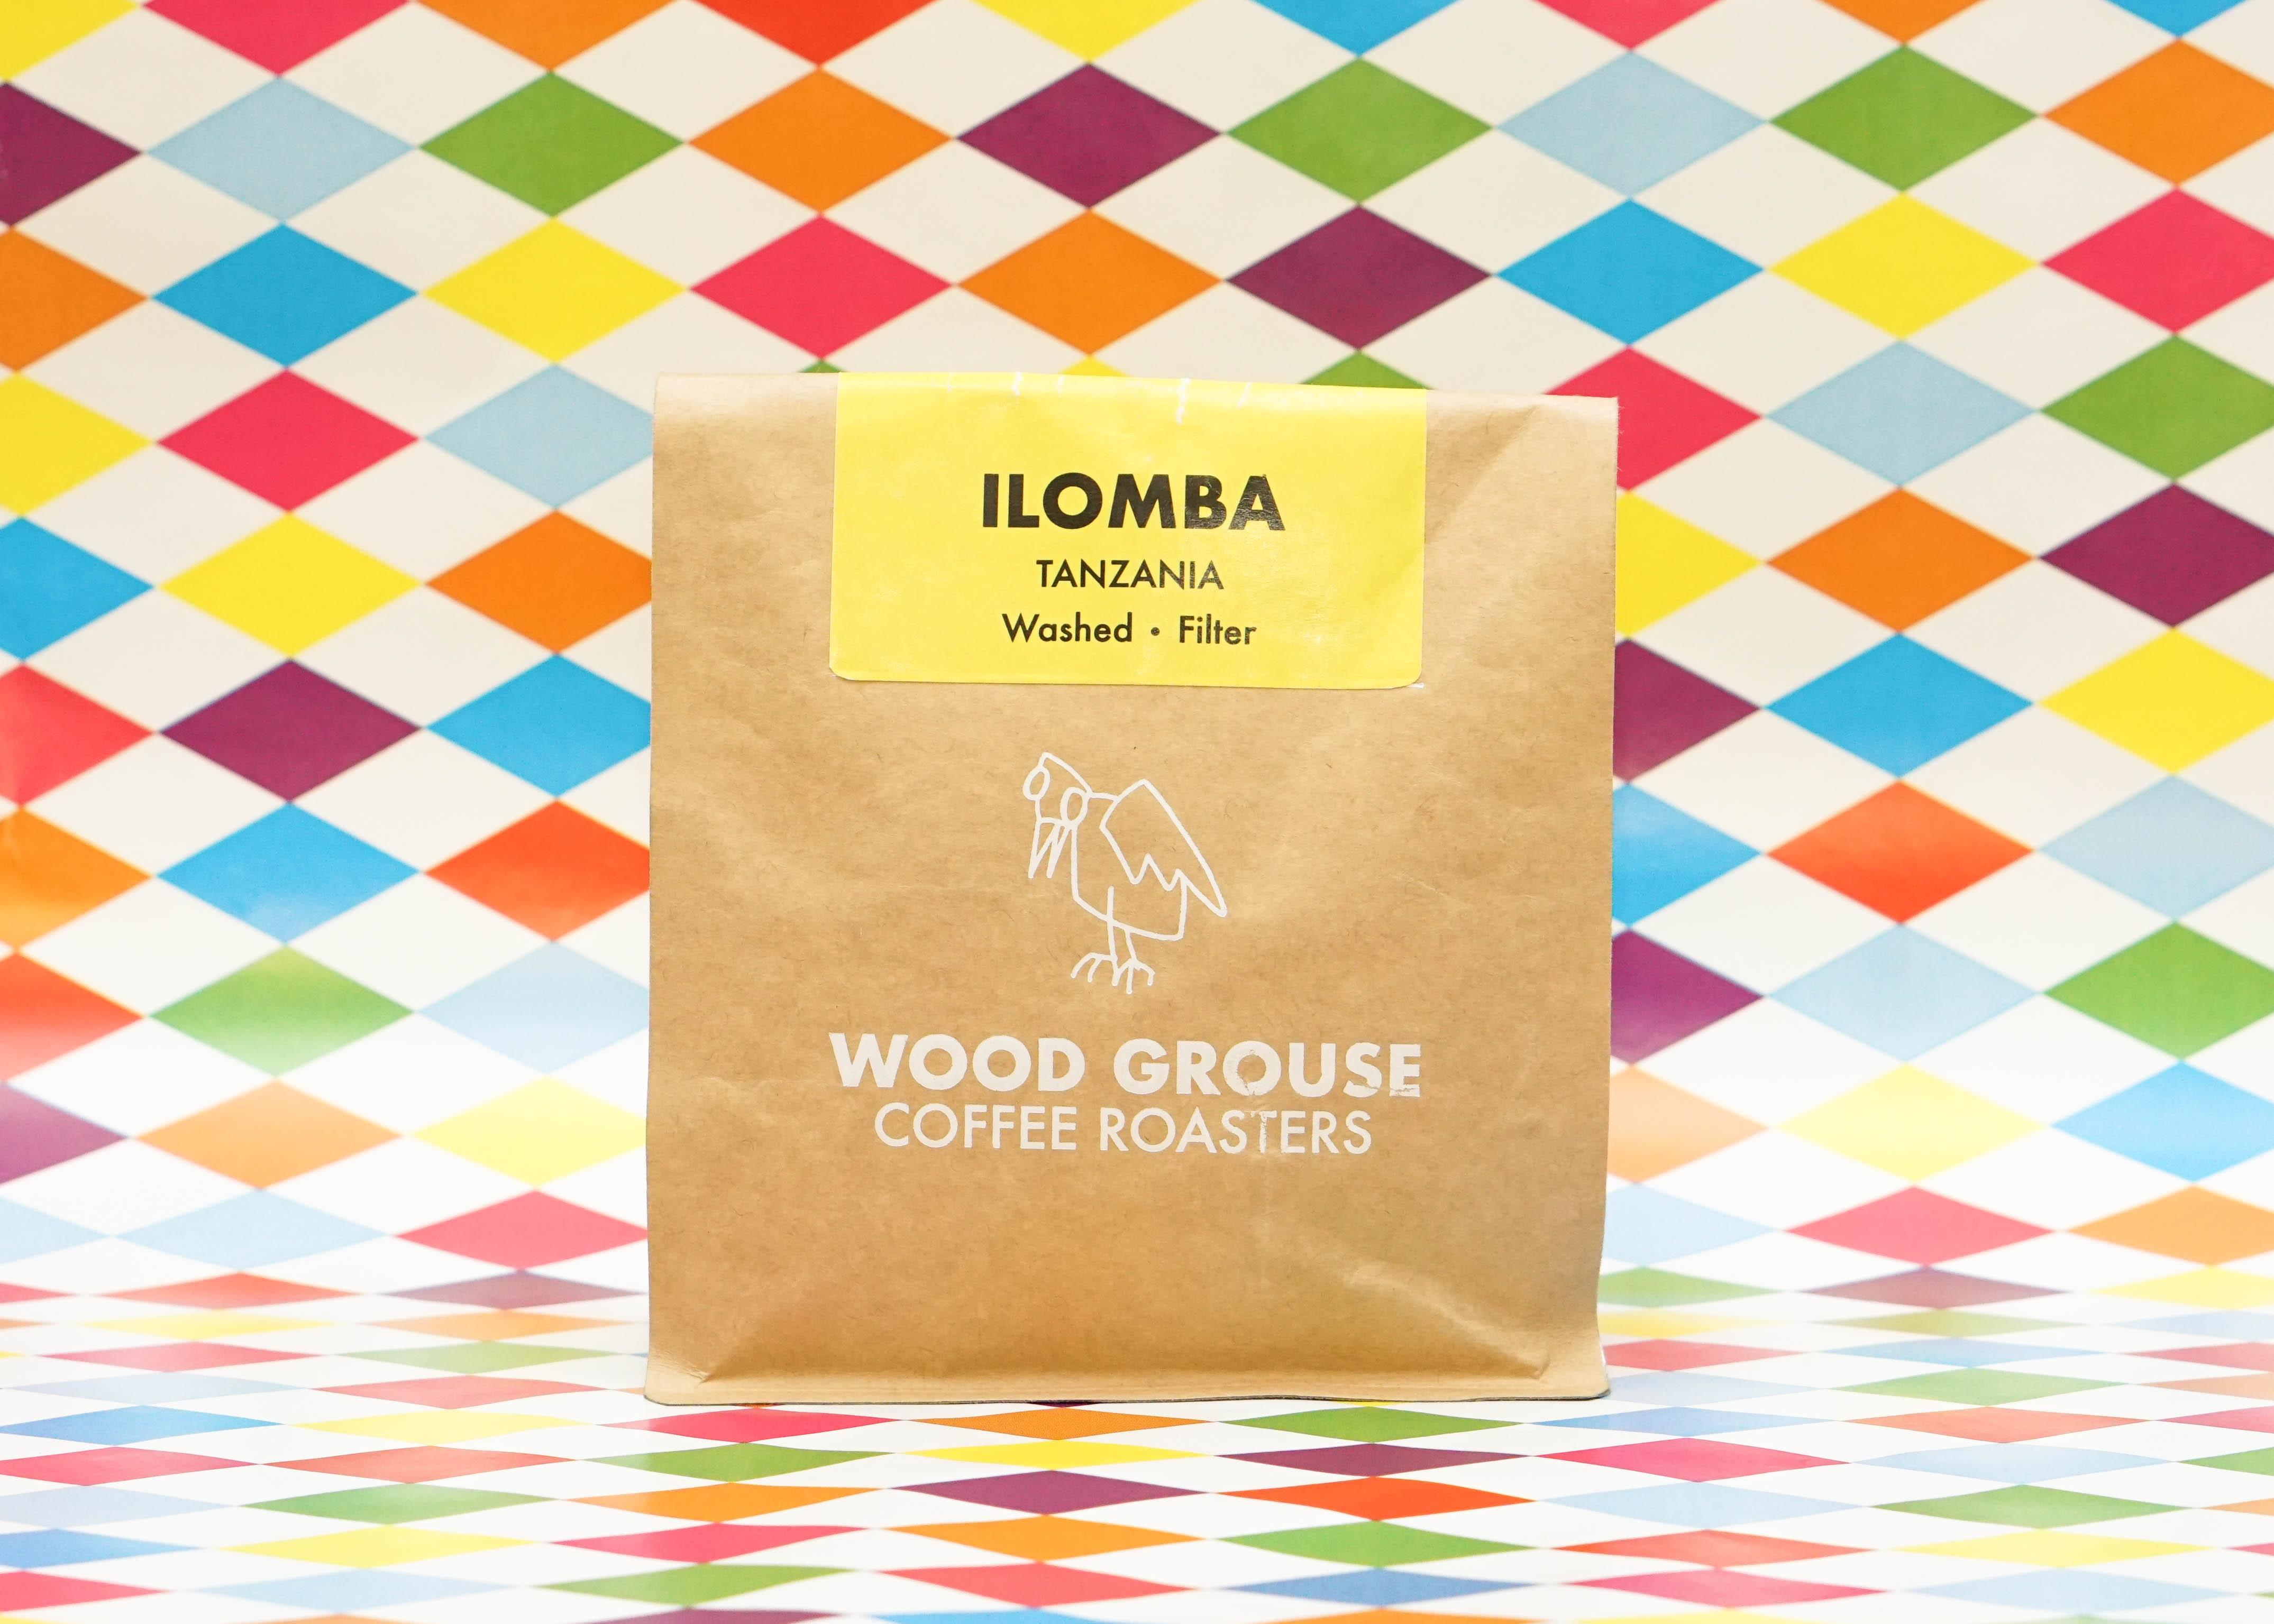 Our coffee from Wood Grouse